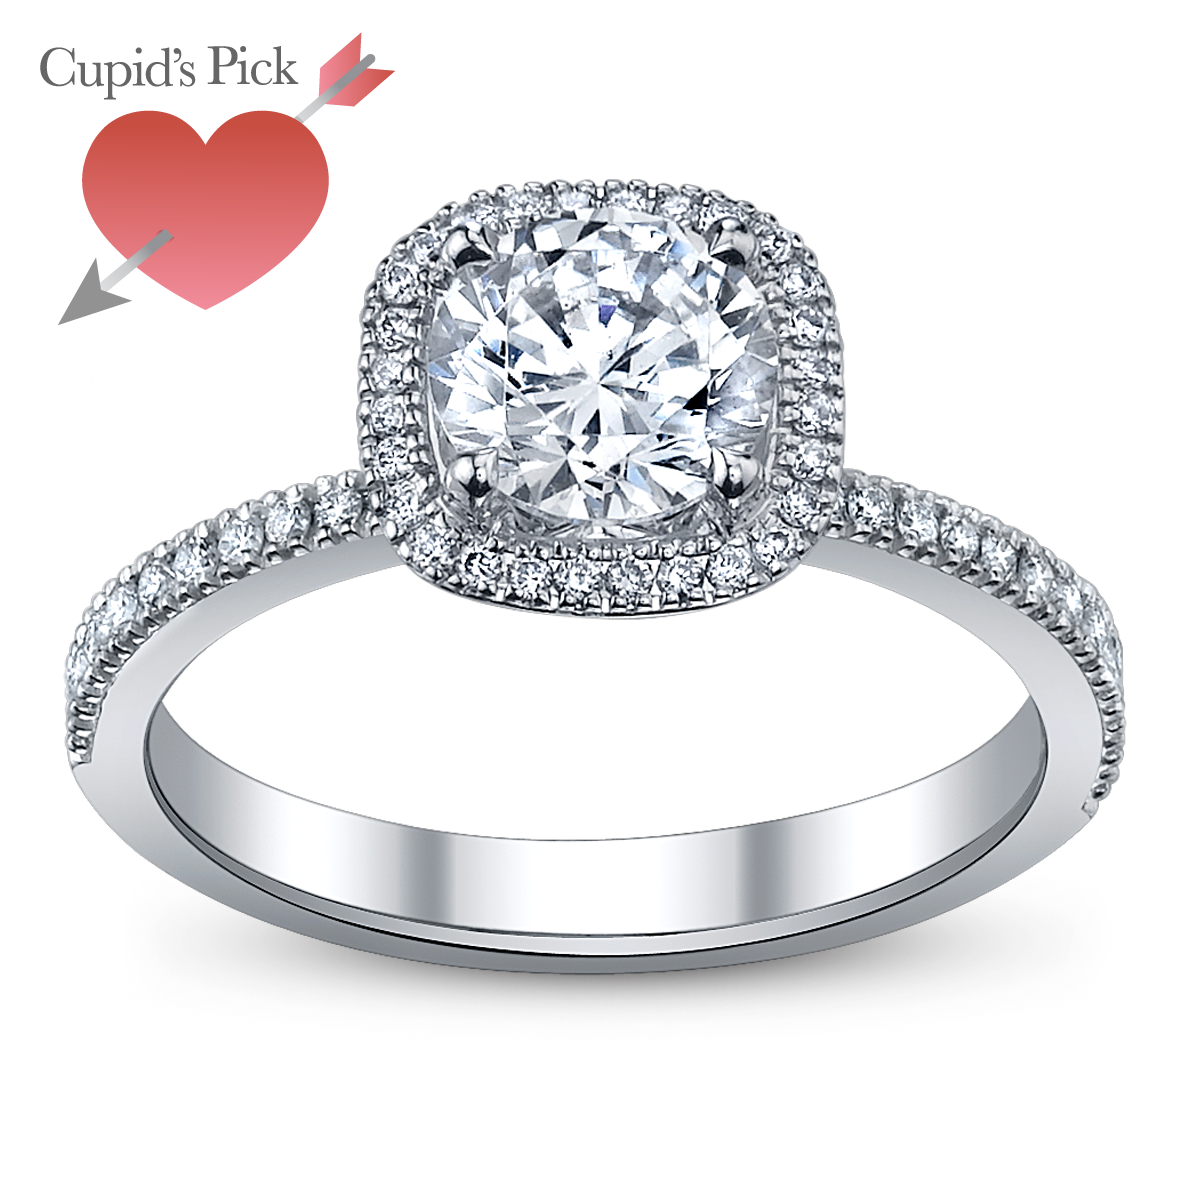 Cupid S Top 12 Engagement Rings And Jewelry For Valentine S Day 2014